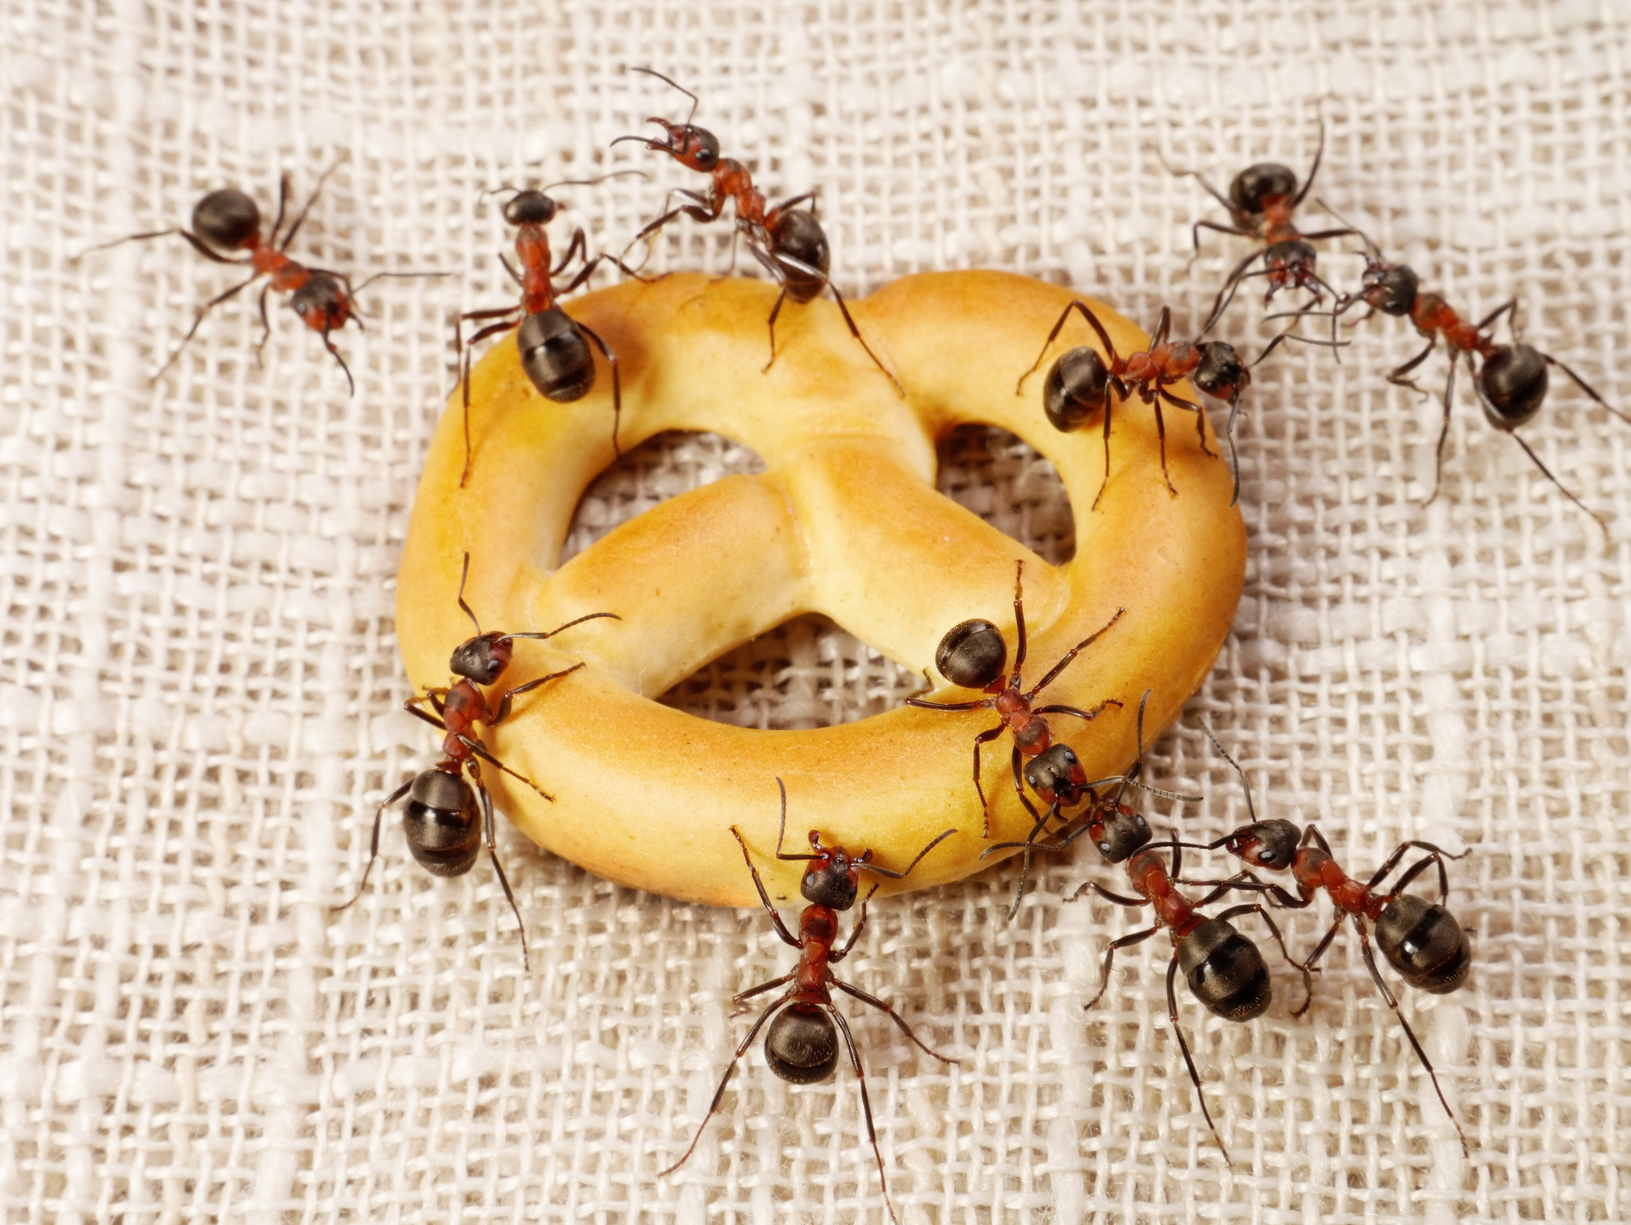 Pest Control Tips Inside Your Home